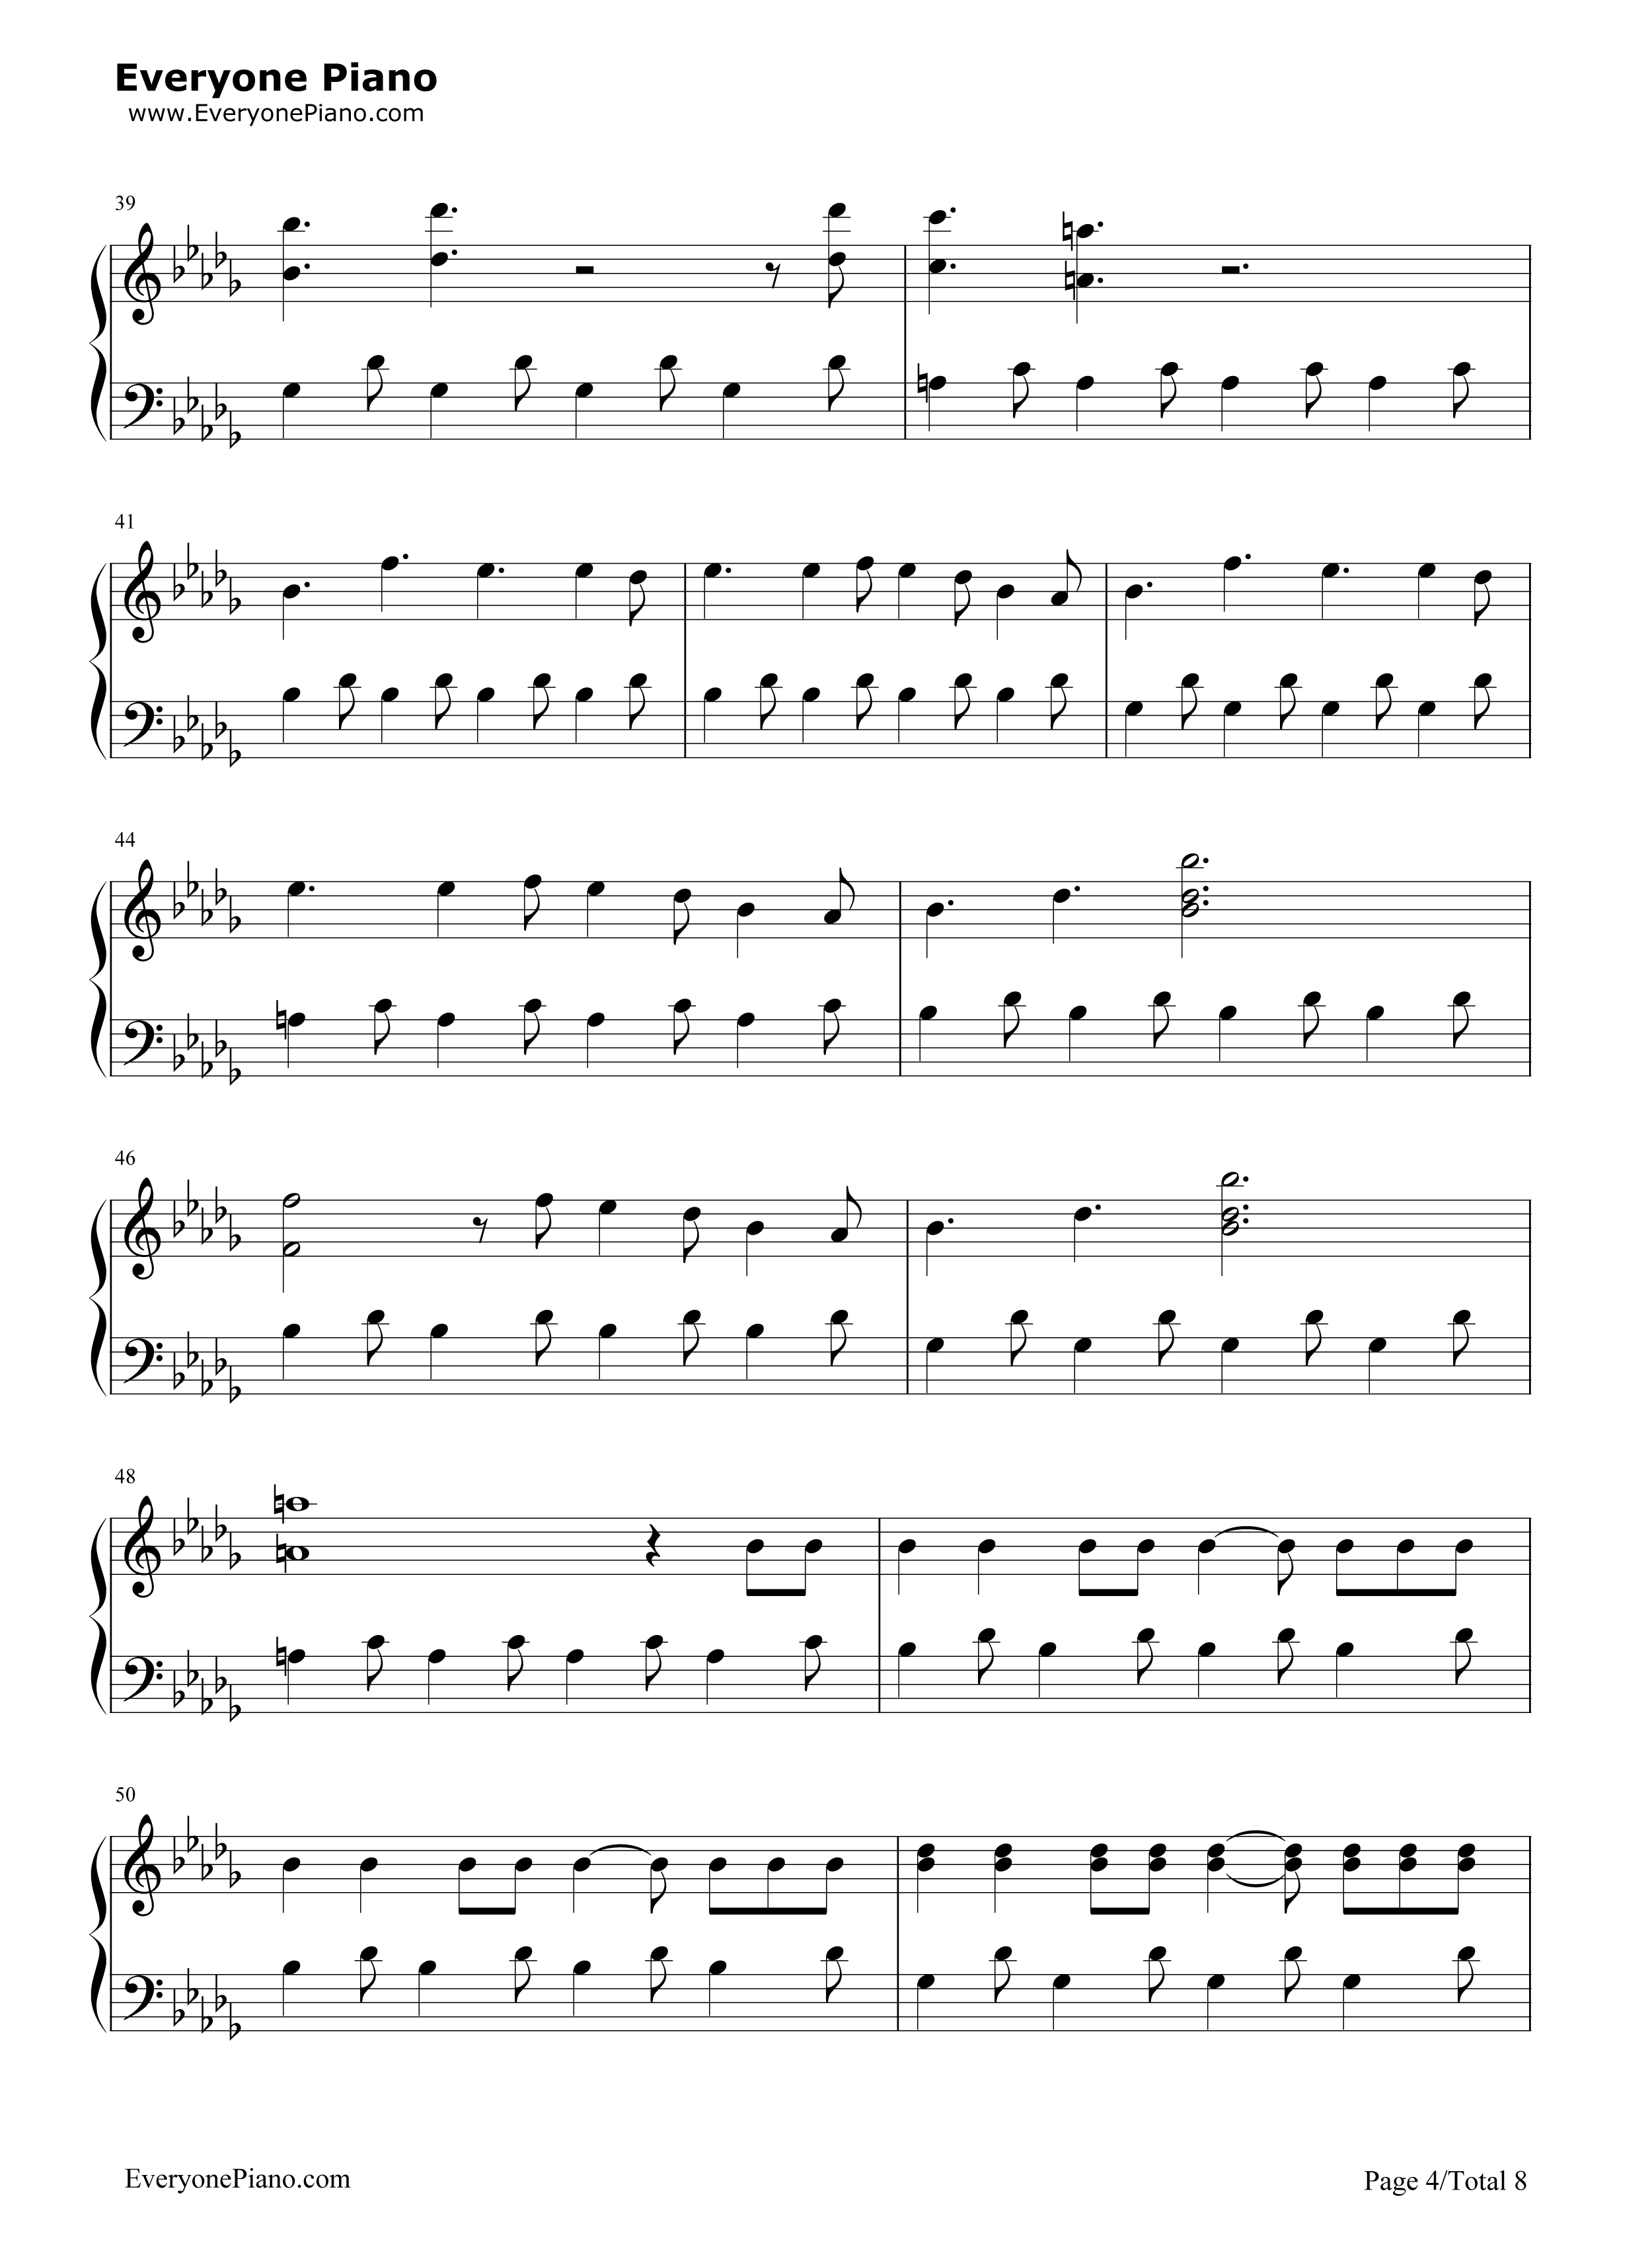 Believer imagine dragons stave preview 4 free piano sheet music listen now print sheet believer imagine dragons stave preview 4 hexwebz Gallery